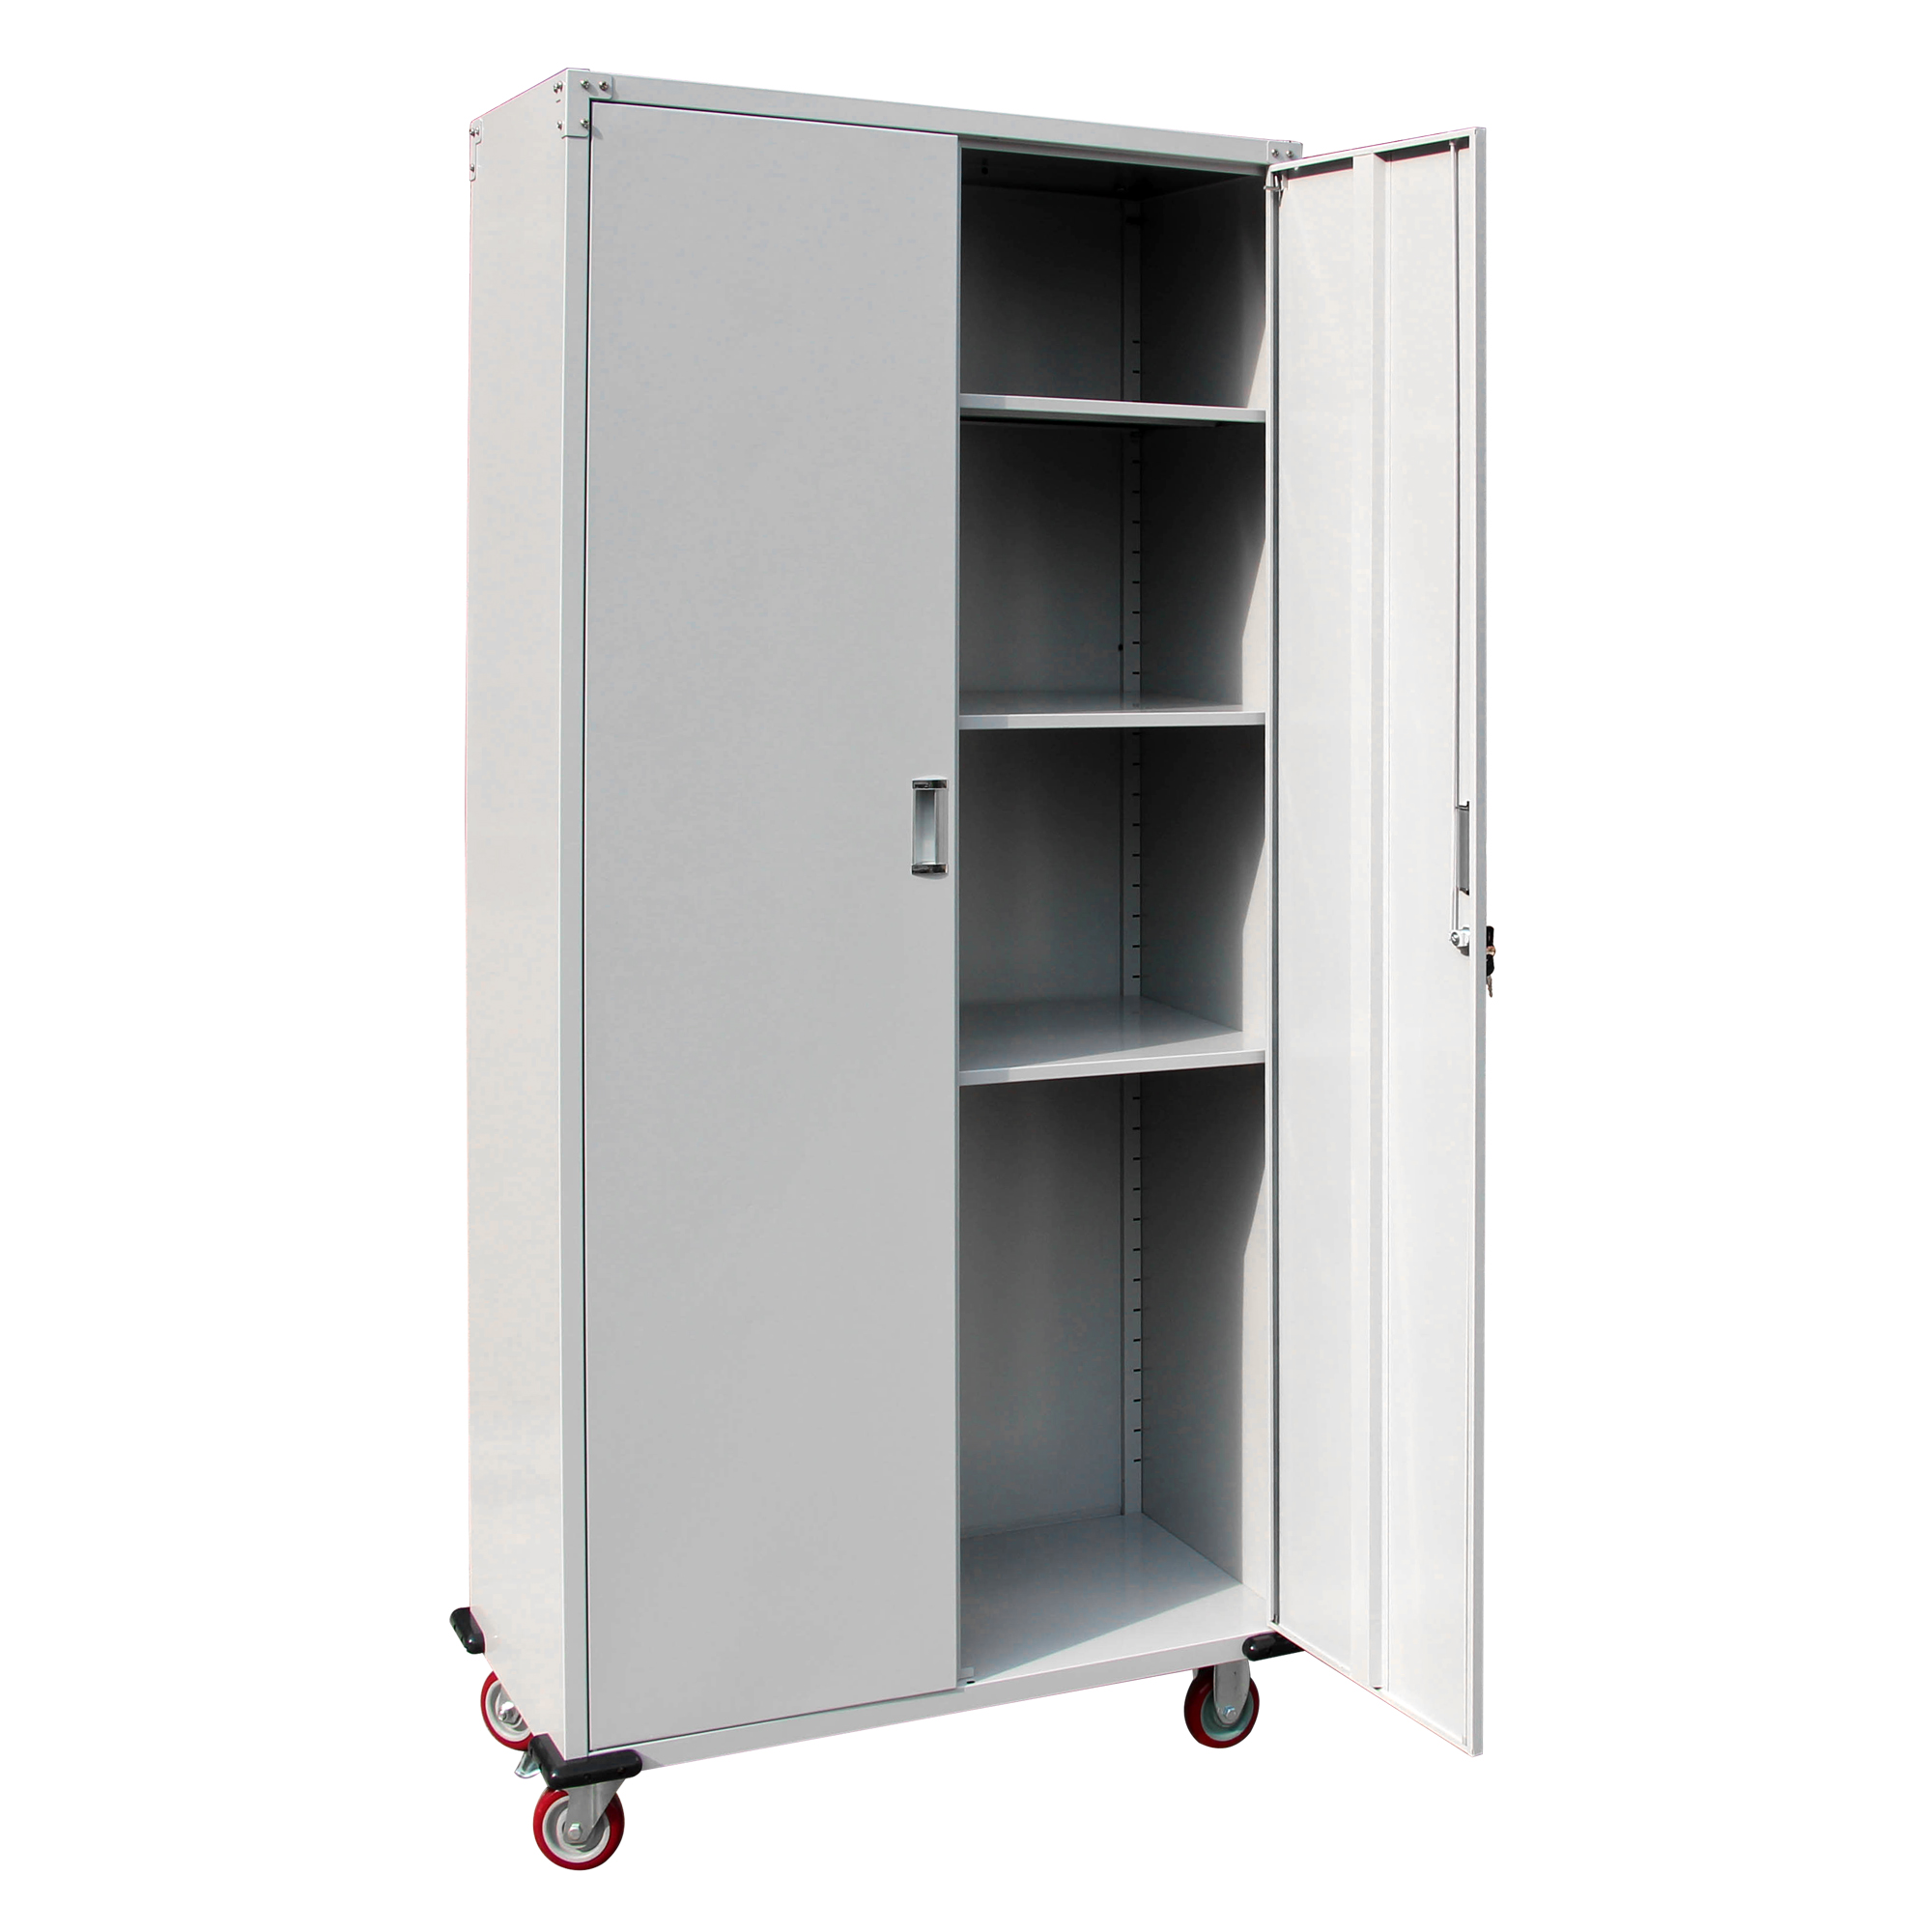 Tips For Buying Garage Utility Cabinets: Rolling Garage Tool Box Storage Cabinet 4 Shelves( 3 Height Adjustable Shelves )